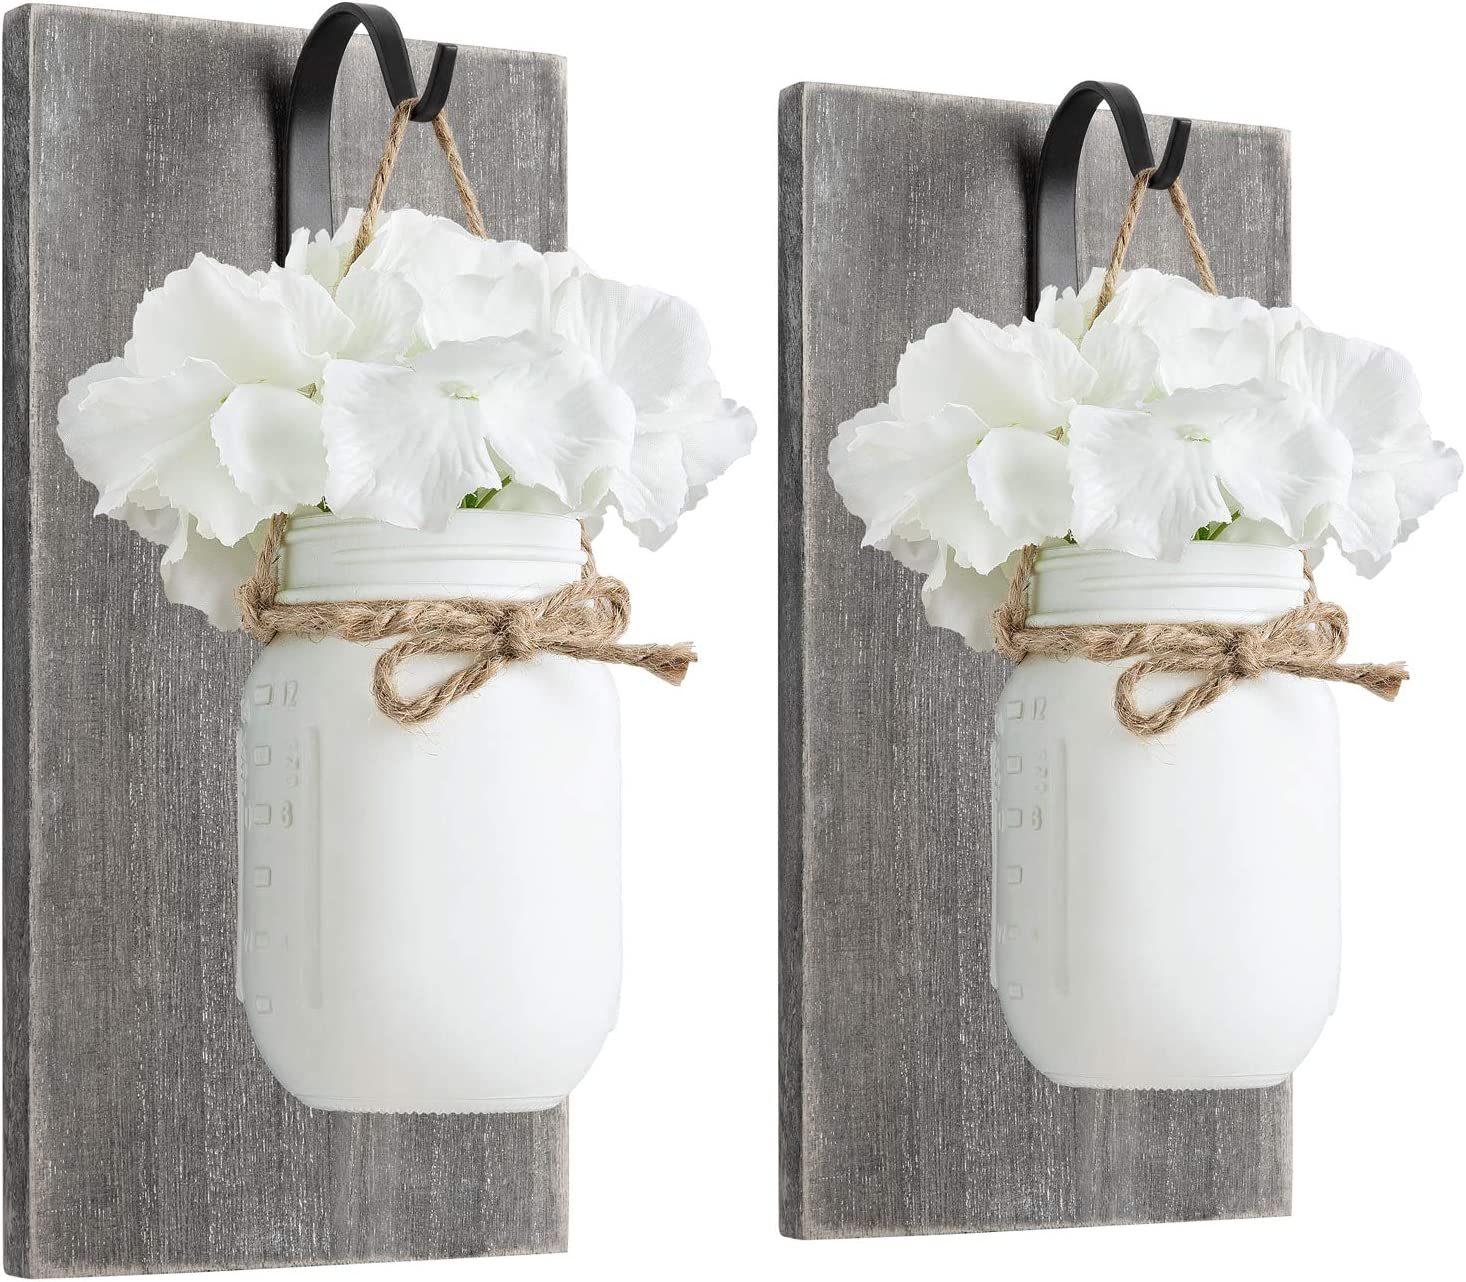 Mkono Mason Jar Sconces Wall Decor Rustic Wall Sconces Set Wood Boards with Flower Mason Jar Wall Art Farmhouse Home Fall Wall Decor Set of 2, White